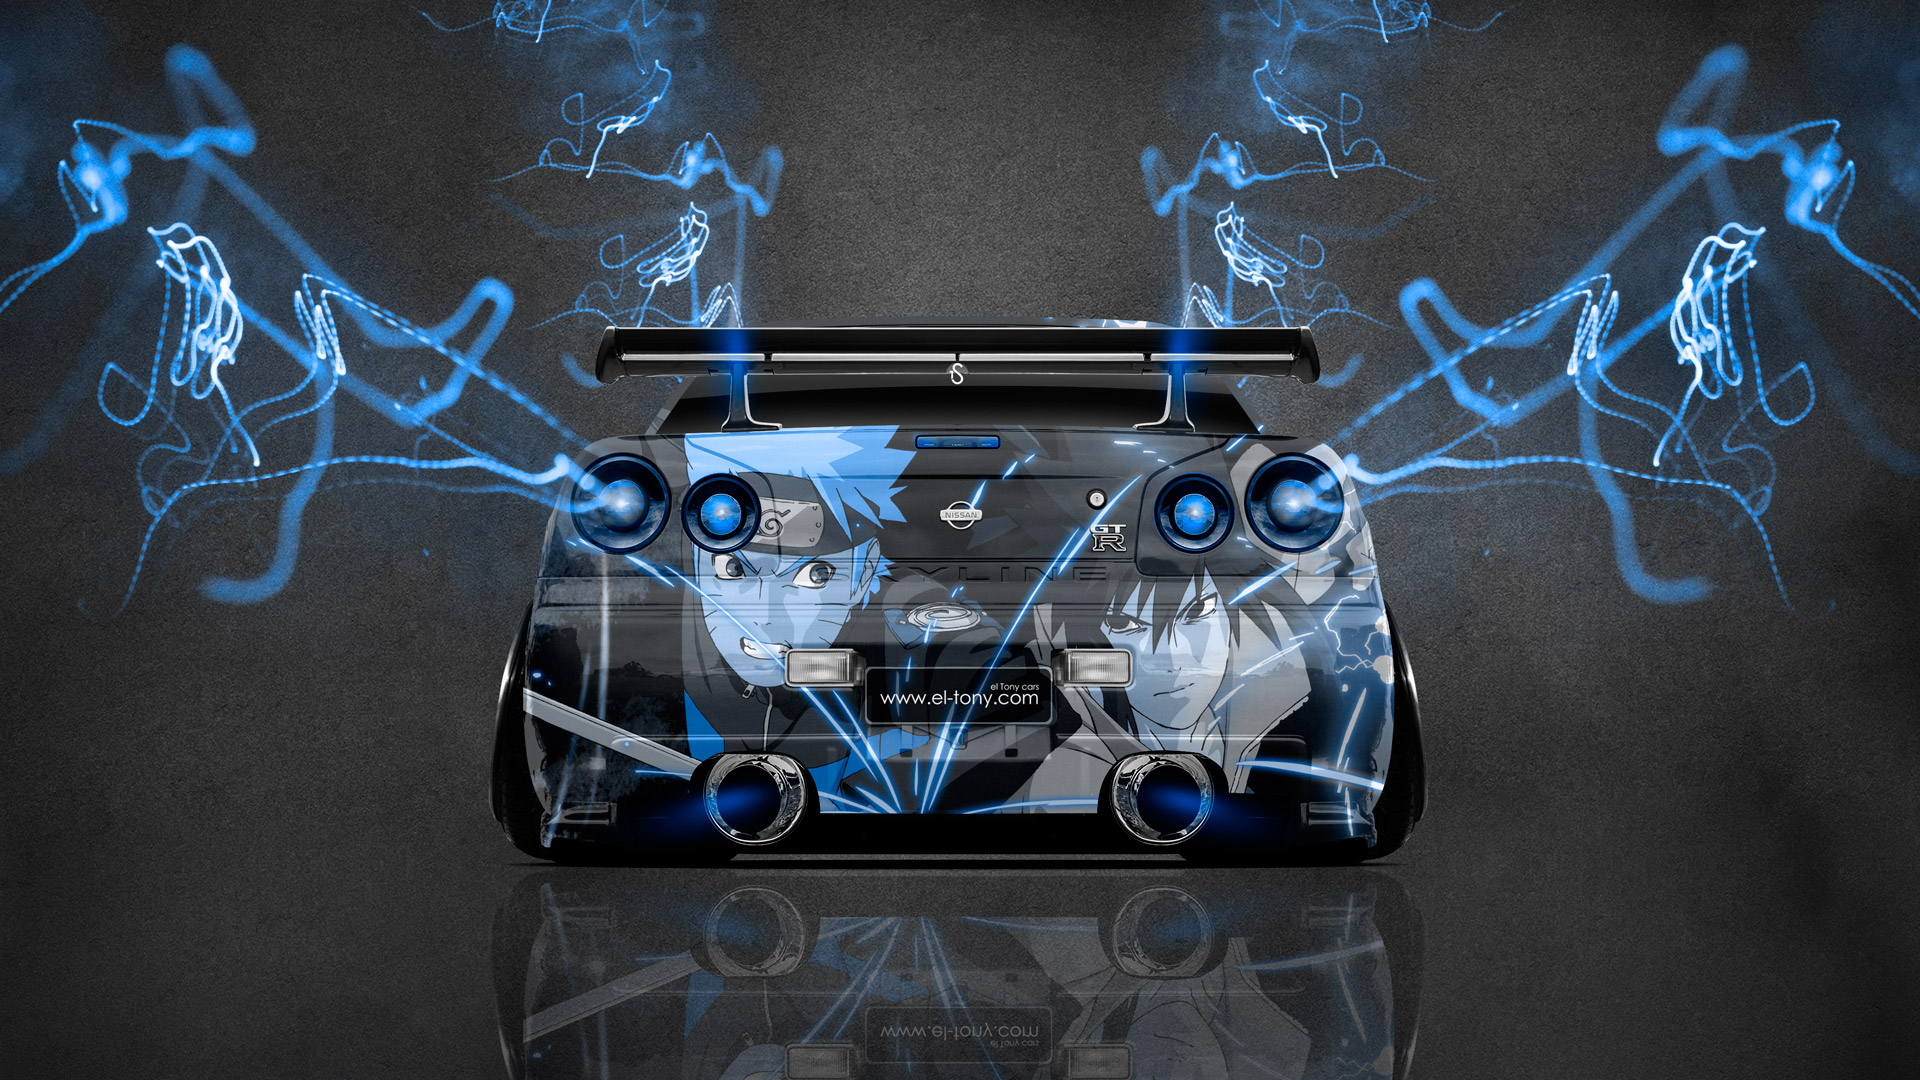 Nissan Skyline GTR R34 JDM Back Anime Aerography Car 2014 Art Blue 1920x1080